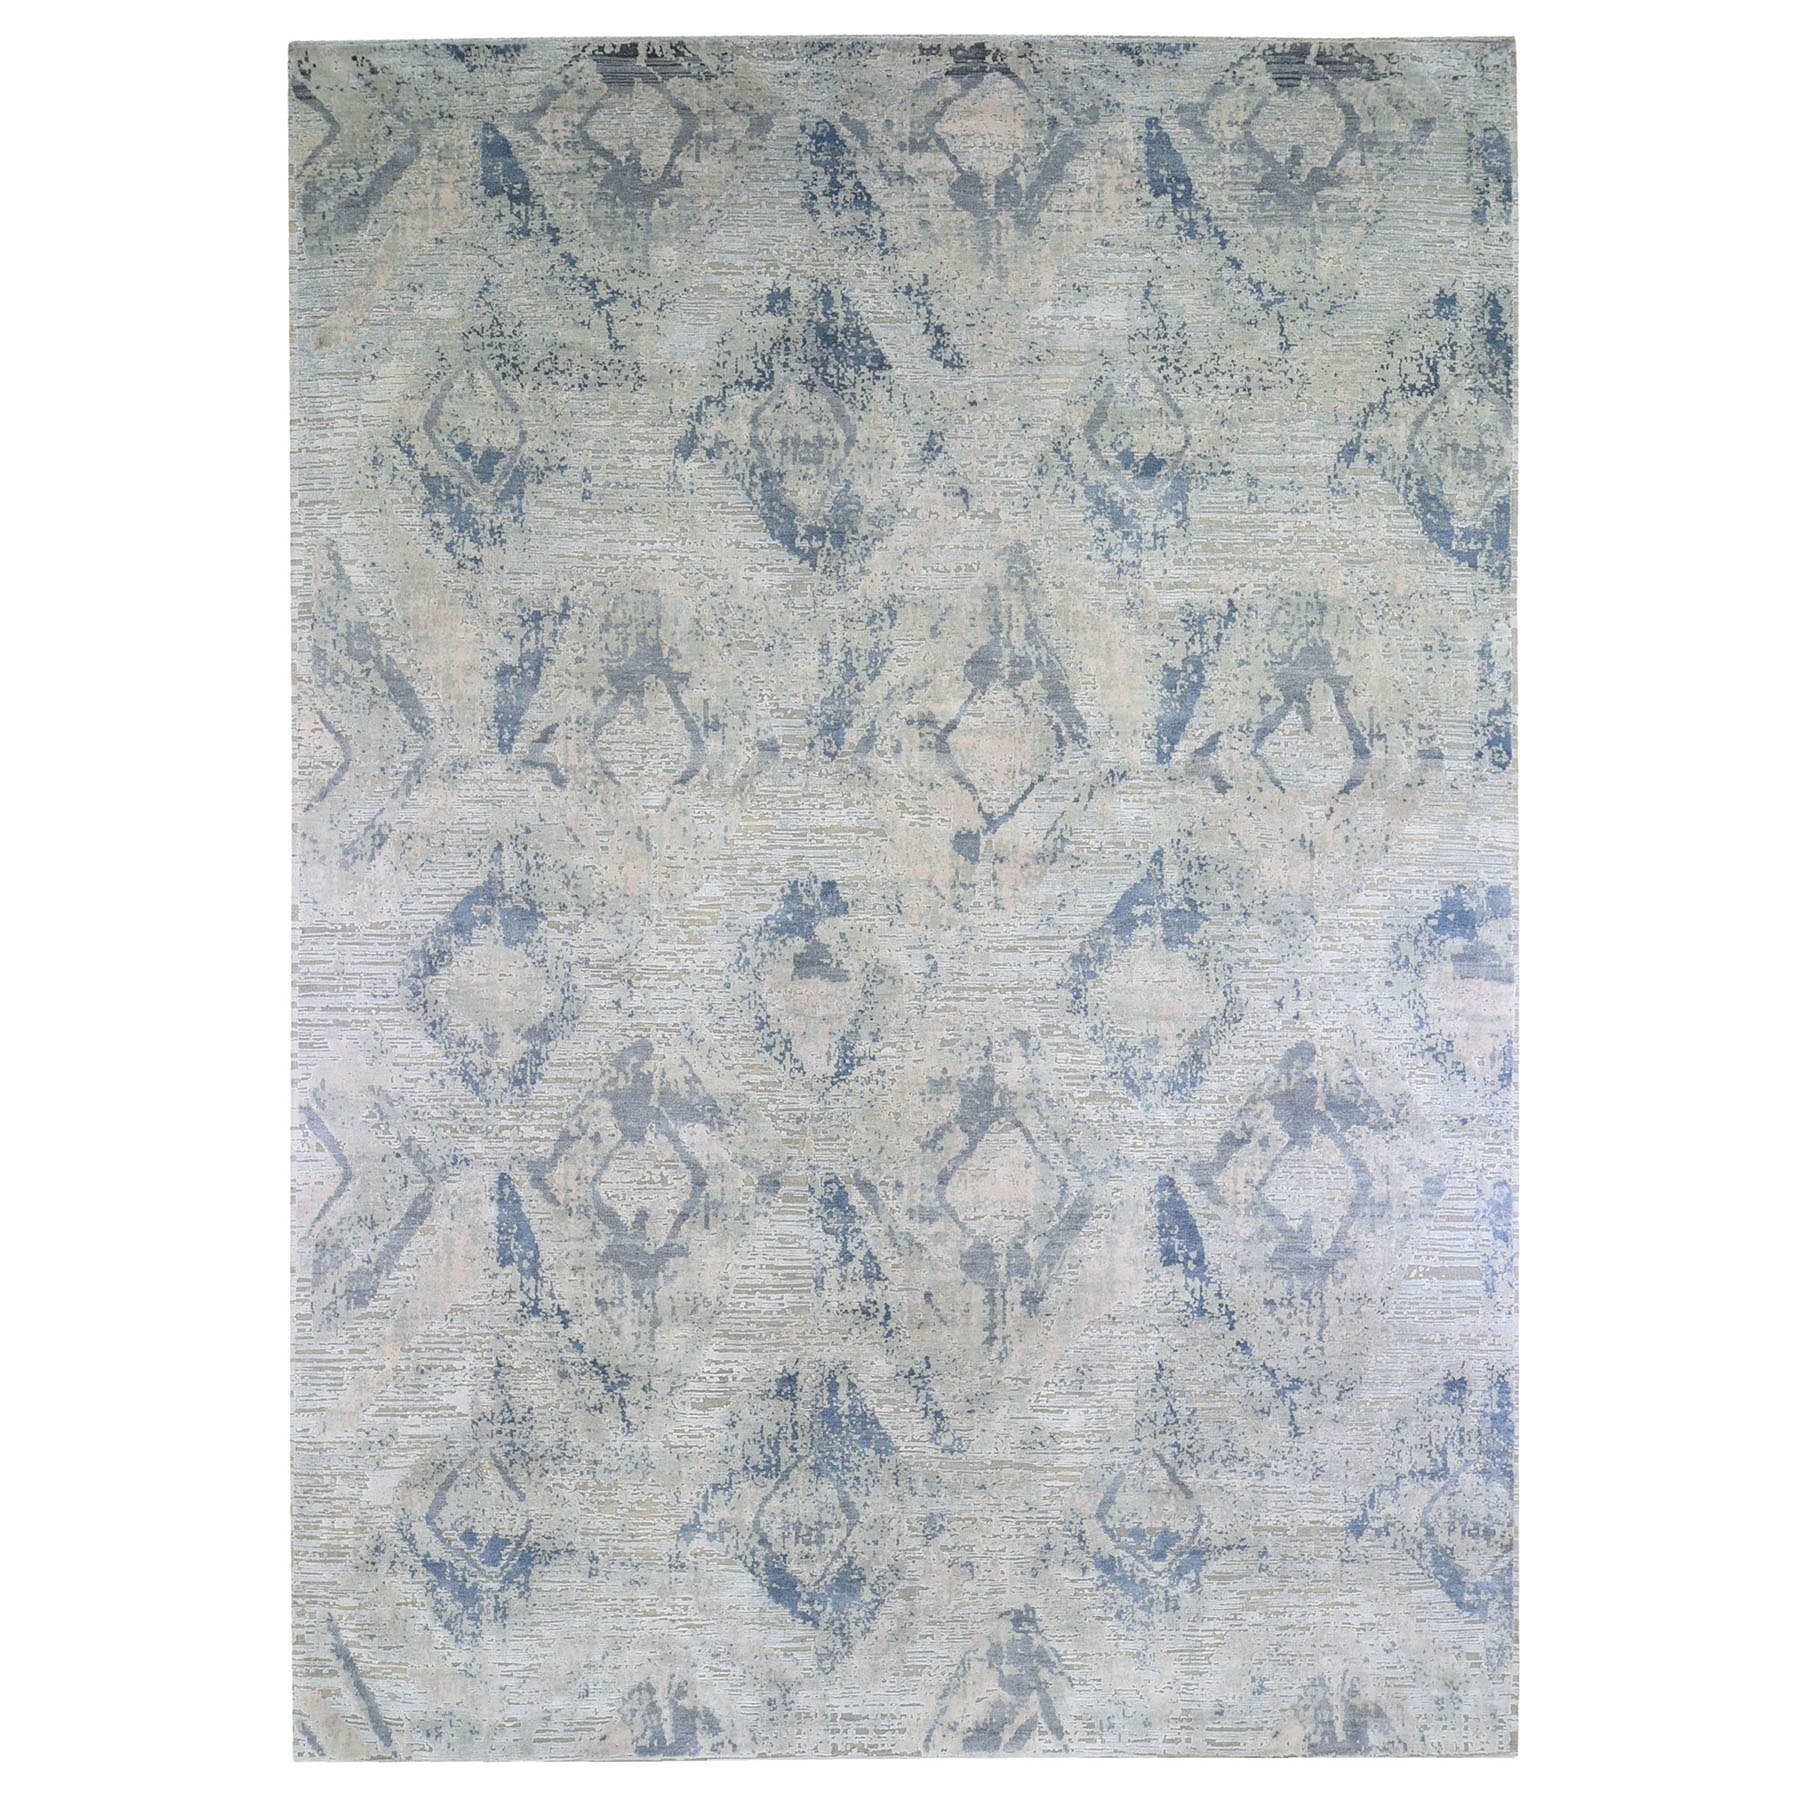 Wool and Real Silk Collection Hand Knotted Ivory Rug No: 1132886